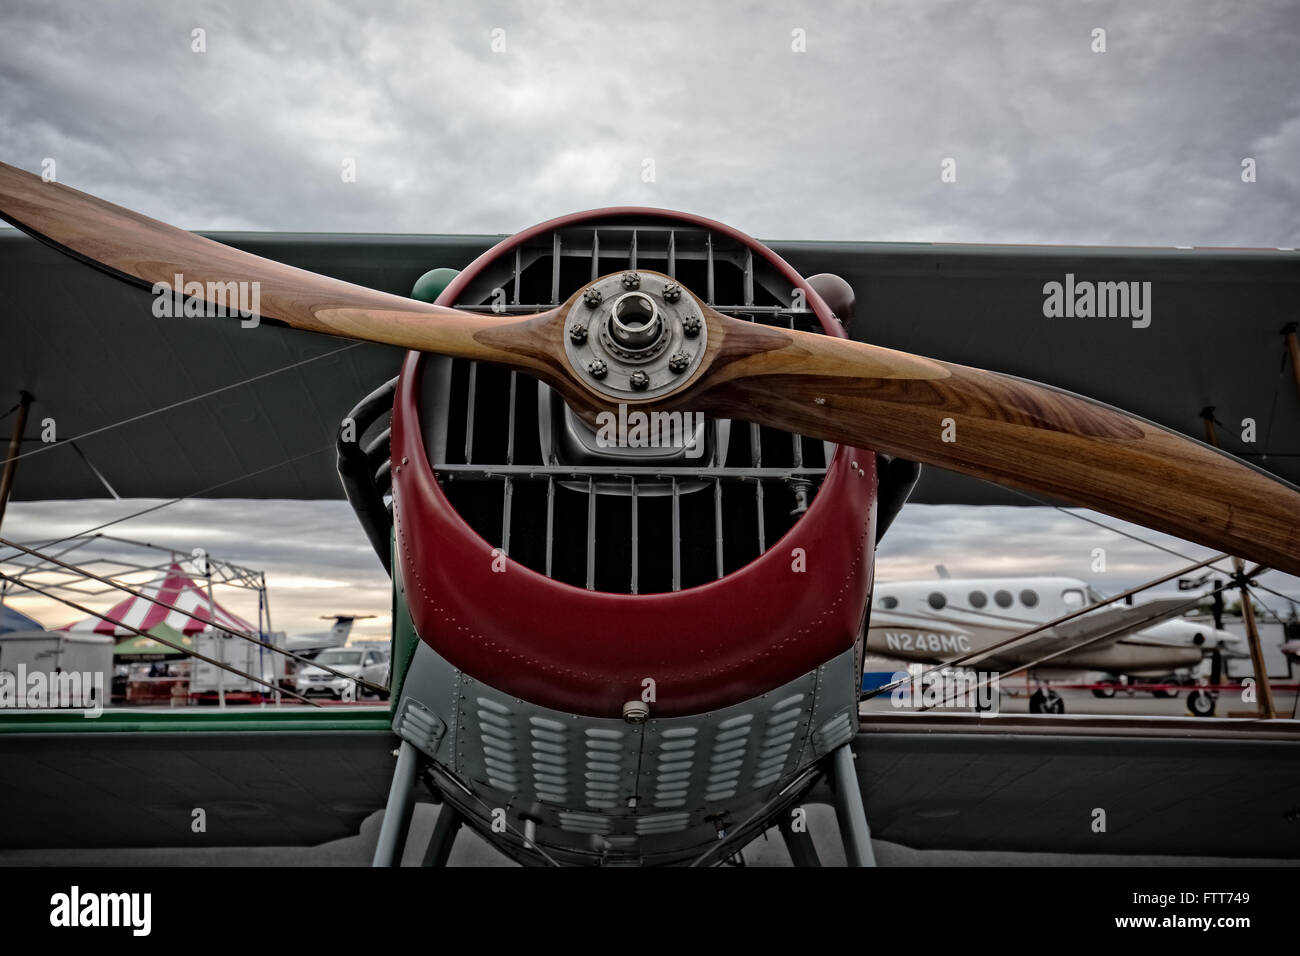 World War One French Spad fighter plane. - Stock Image